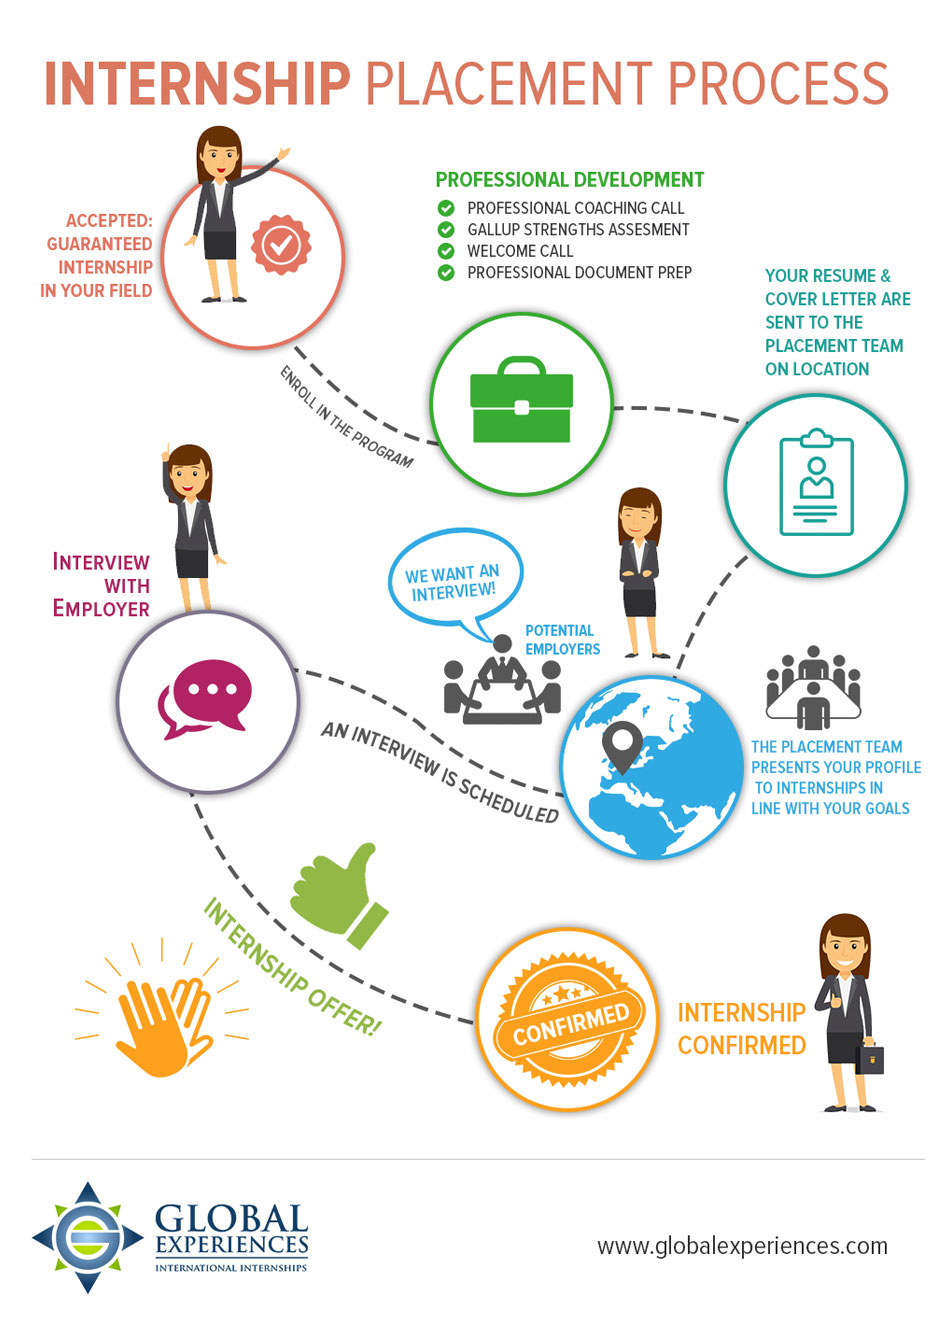 Internship Placement Process Infographic